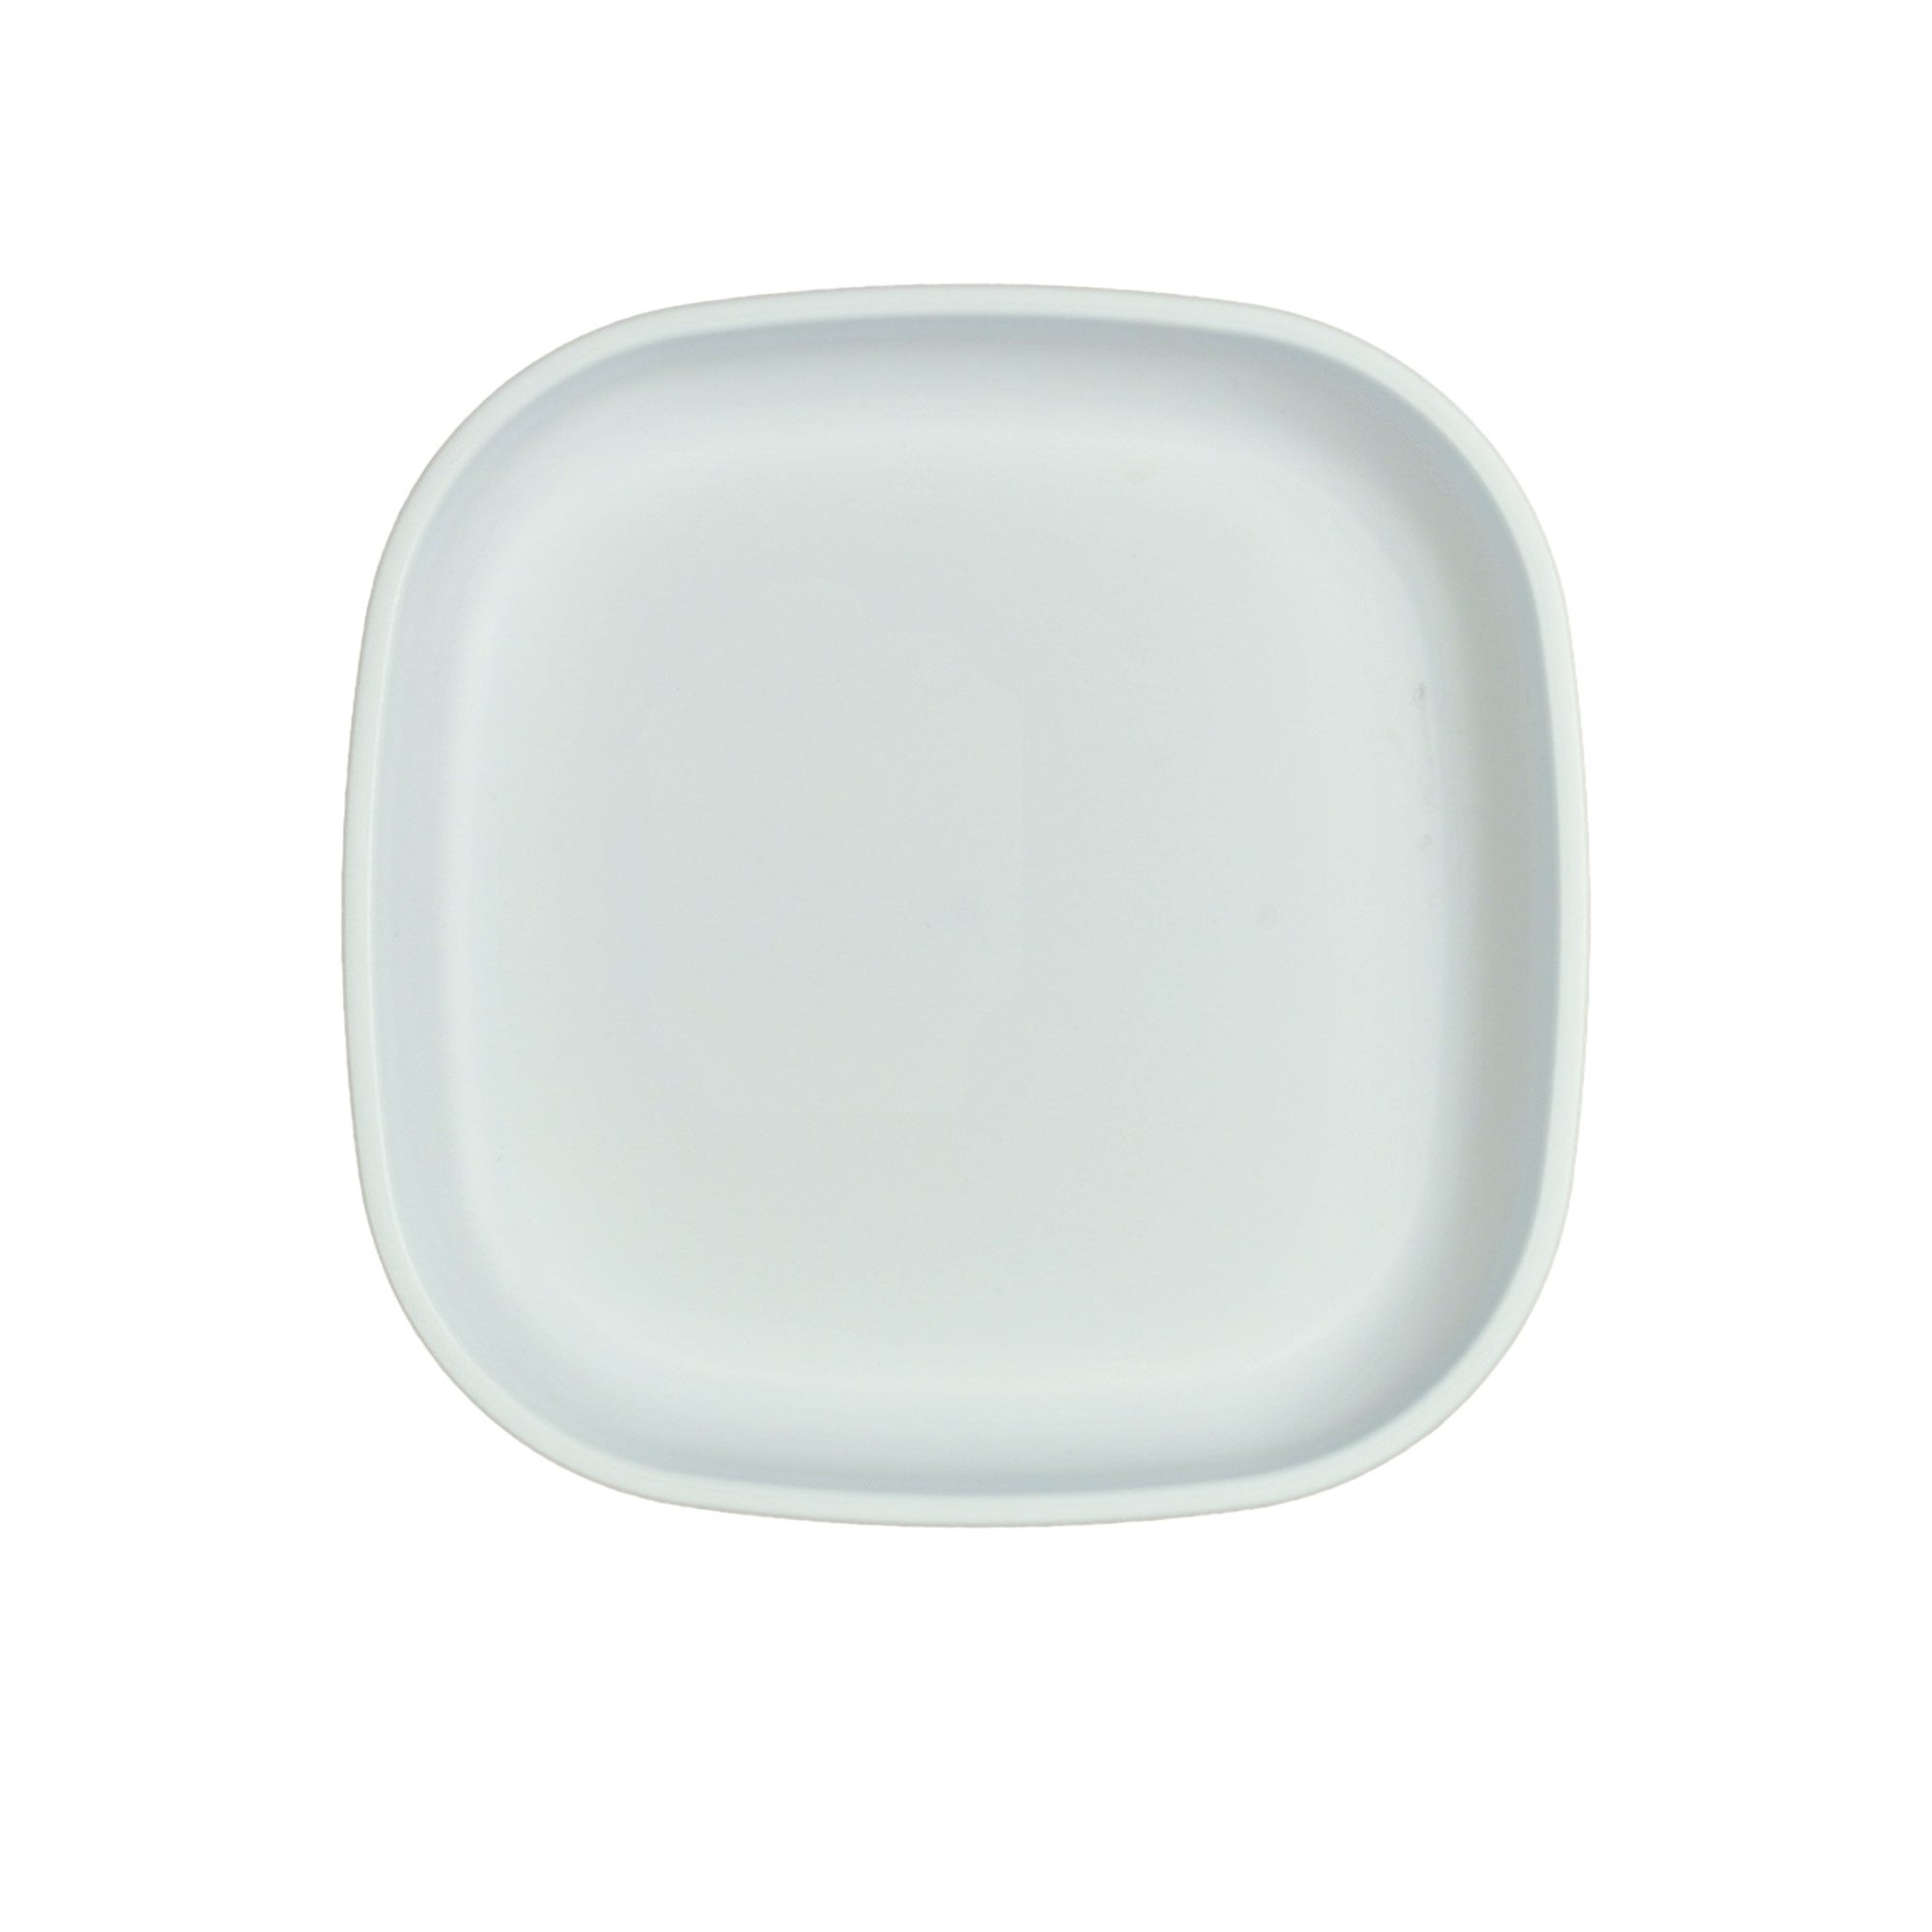 Large Flat Plate (White)